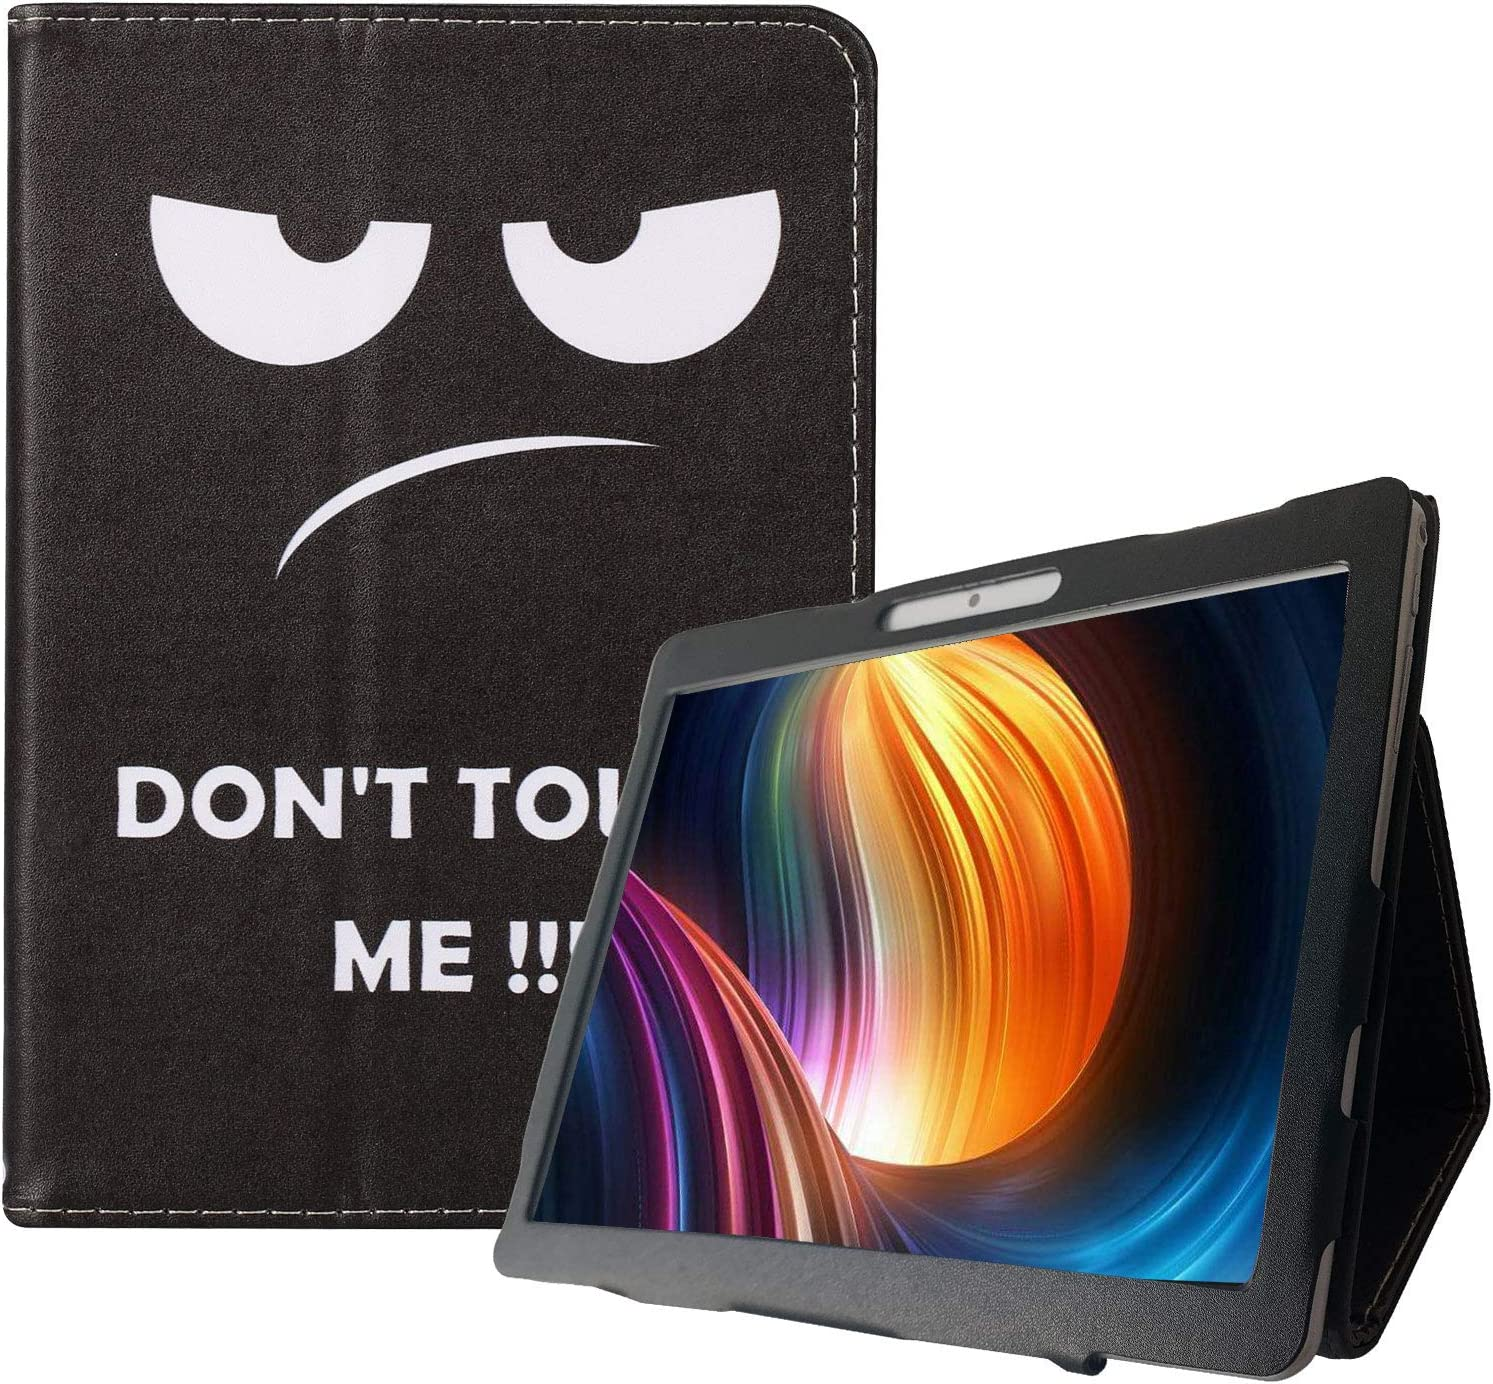 Transwon 10 Inch Tablet Case for Dragon Touch K10/ Max10, ZONKO 10.1 Tablet, Victbing/Winsing/Hoozo/Tabtrust 10.1, Penen/Pavoma 10 Inch Android Tablet, KOOA 10 Inch Tablet, Foren-Tek 10 - Dont Touch